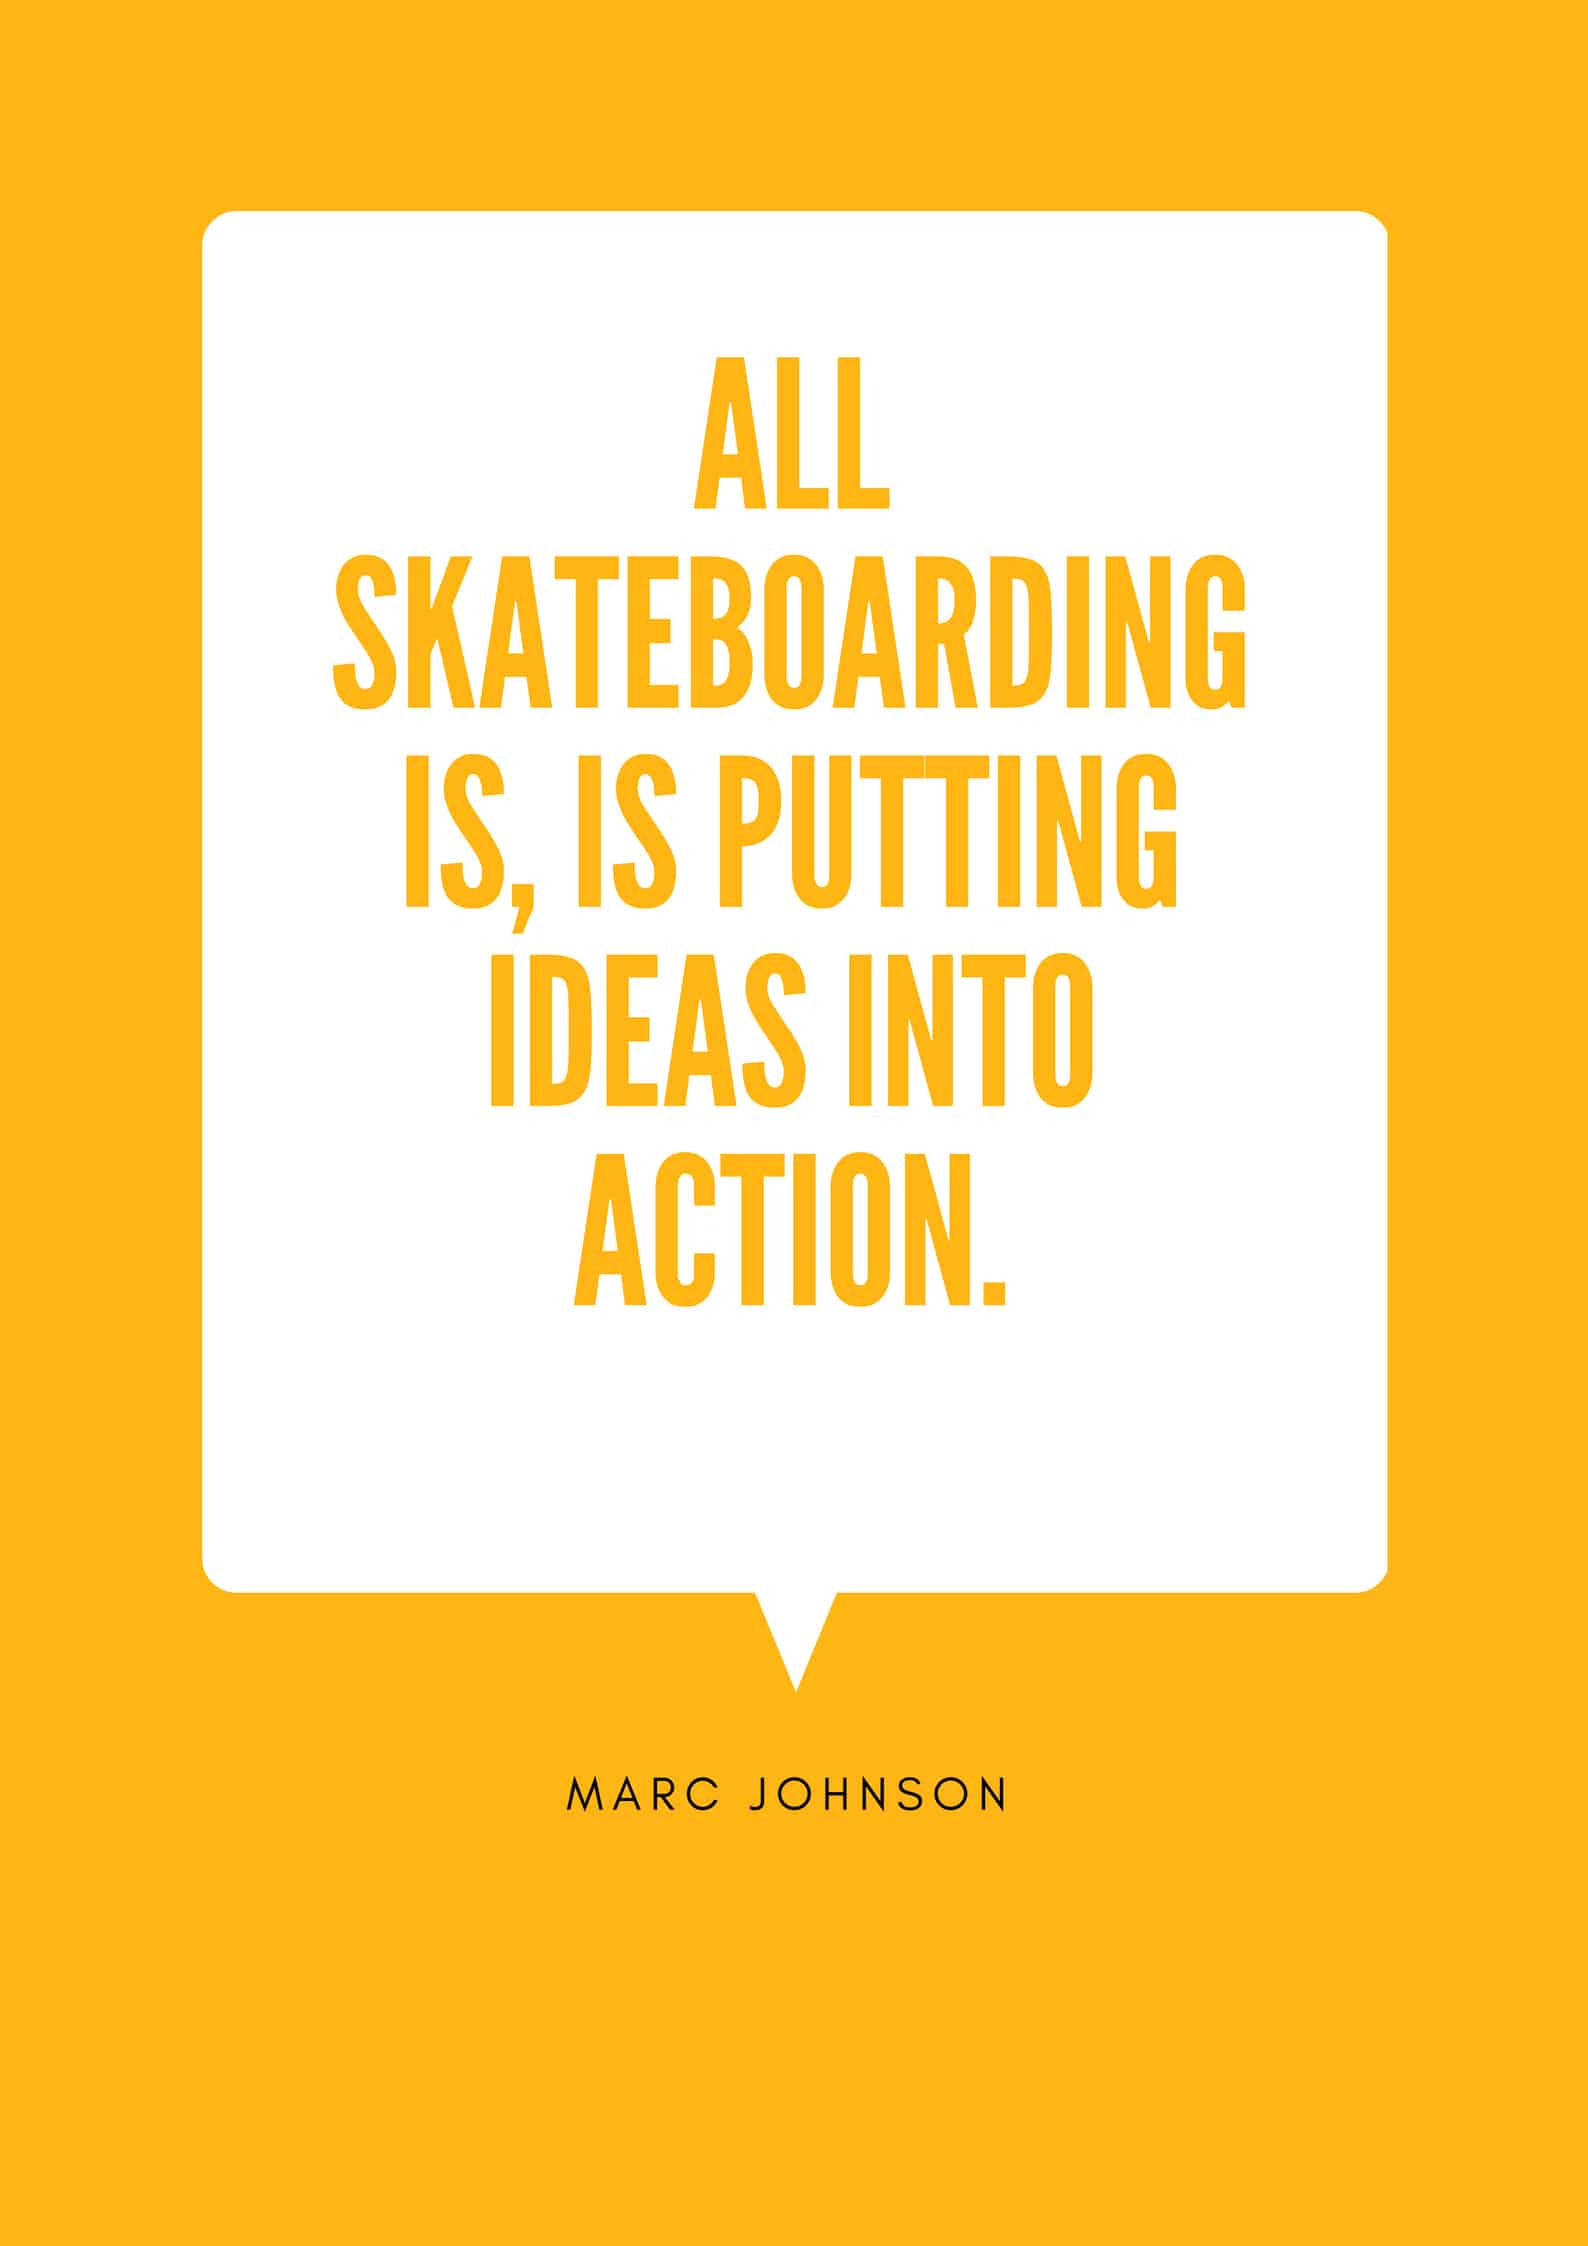 ALL SKATEBOARDING IS, IS PUTTING IDEAS INTO ACTION.